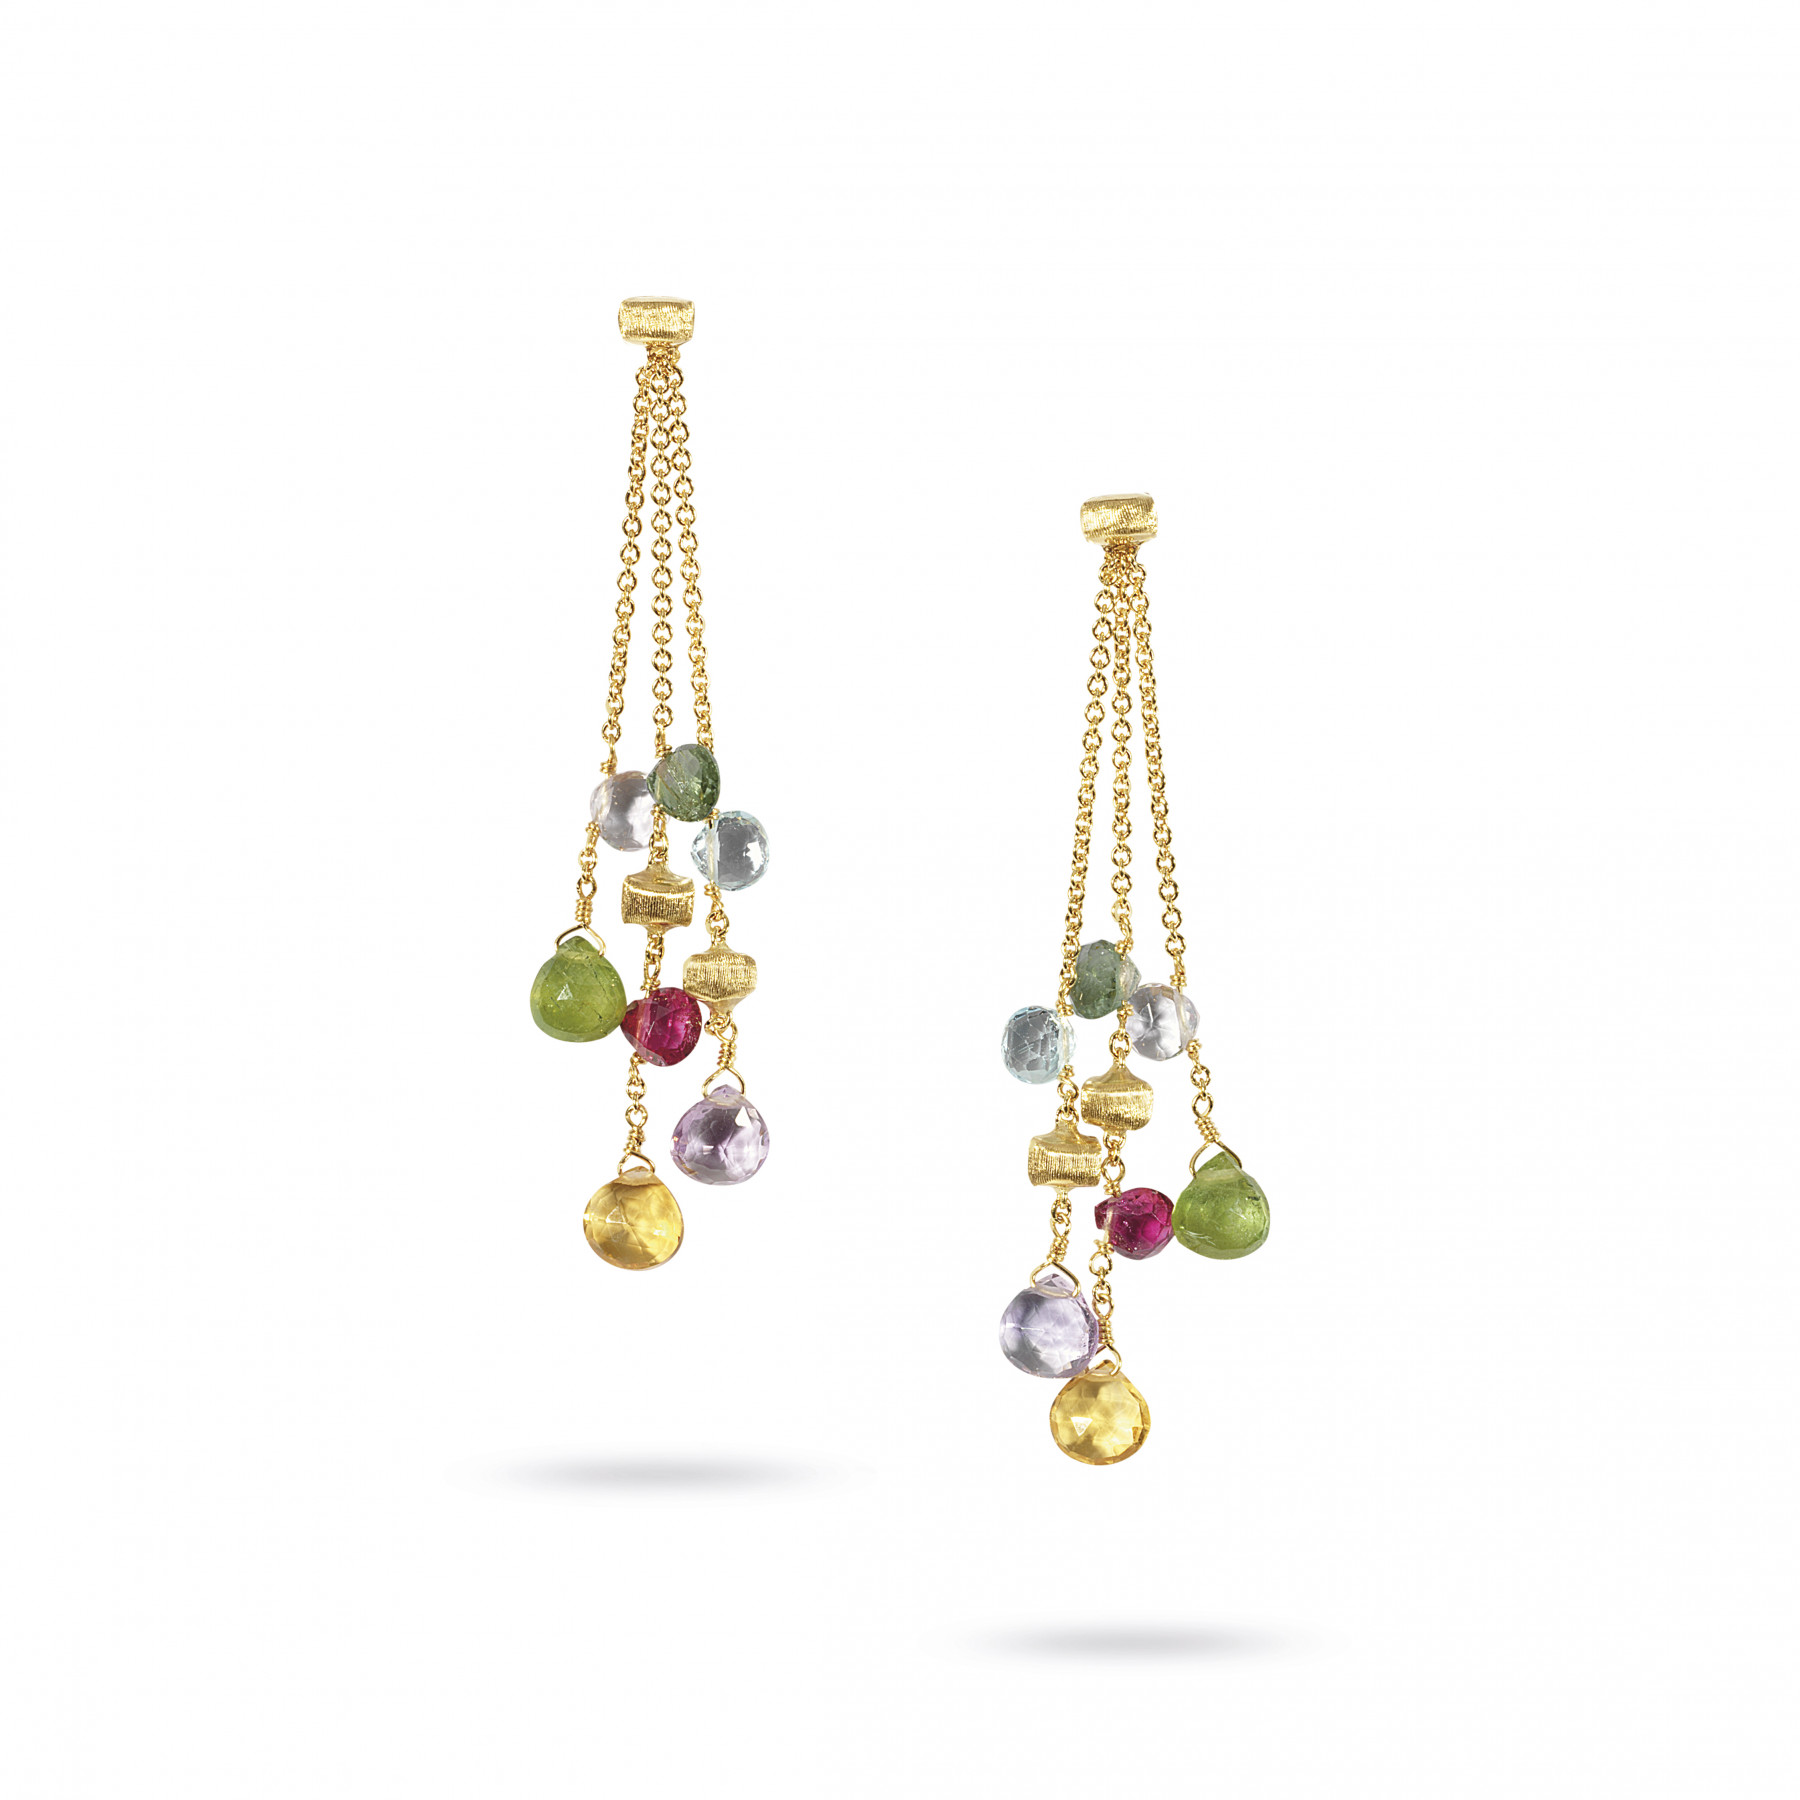 Marco Bicego Paradise 18kt Yellow Gold 3-Strand Earrings with Multi-Colored Gemstones